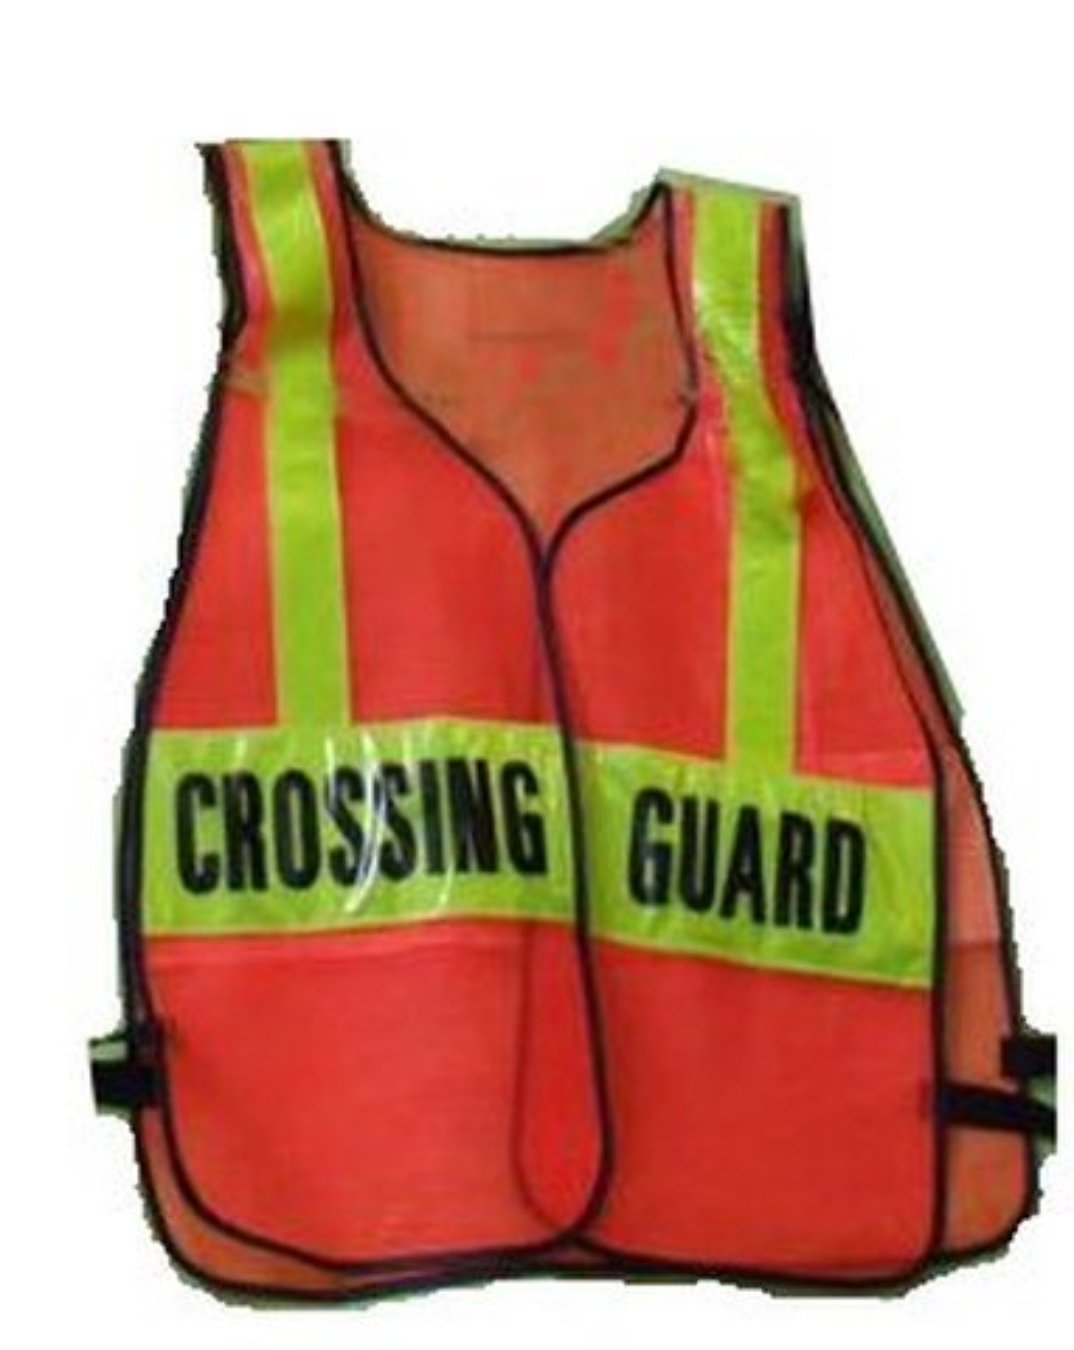 SCHOOL CROSSING GUARD Orange REFLECTIVE Traffic Safety Vest One Size Fits All, By TSV by